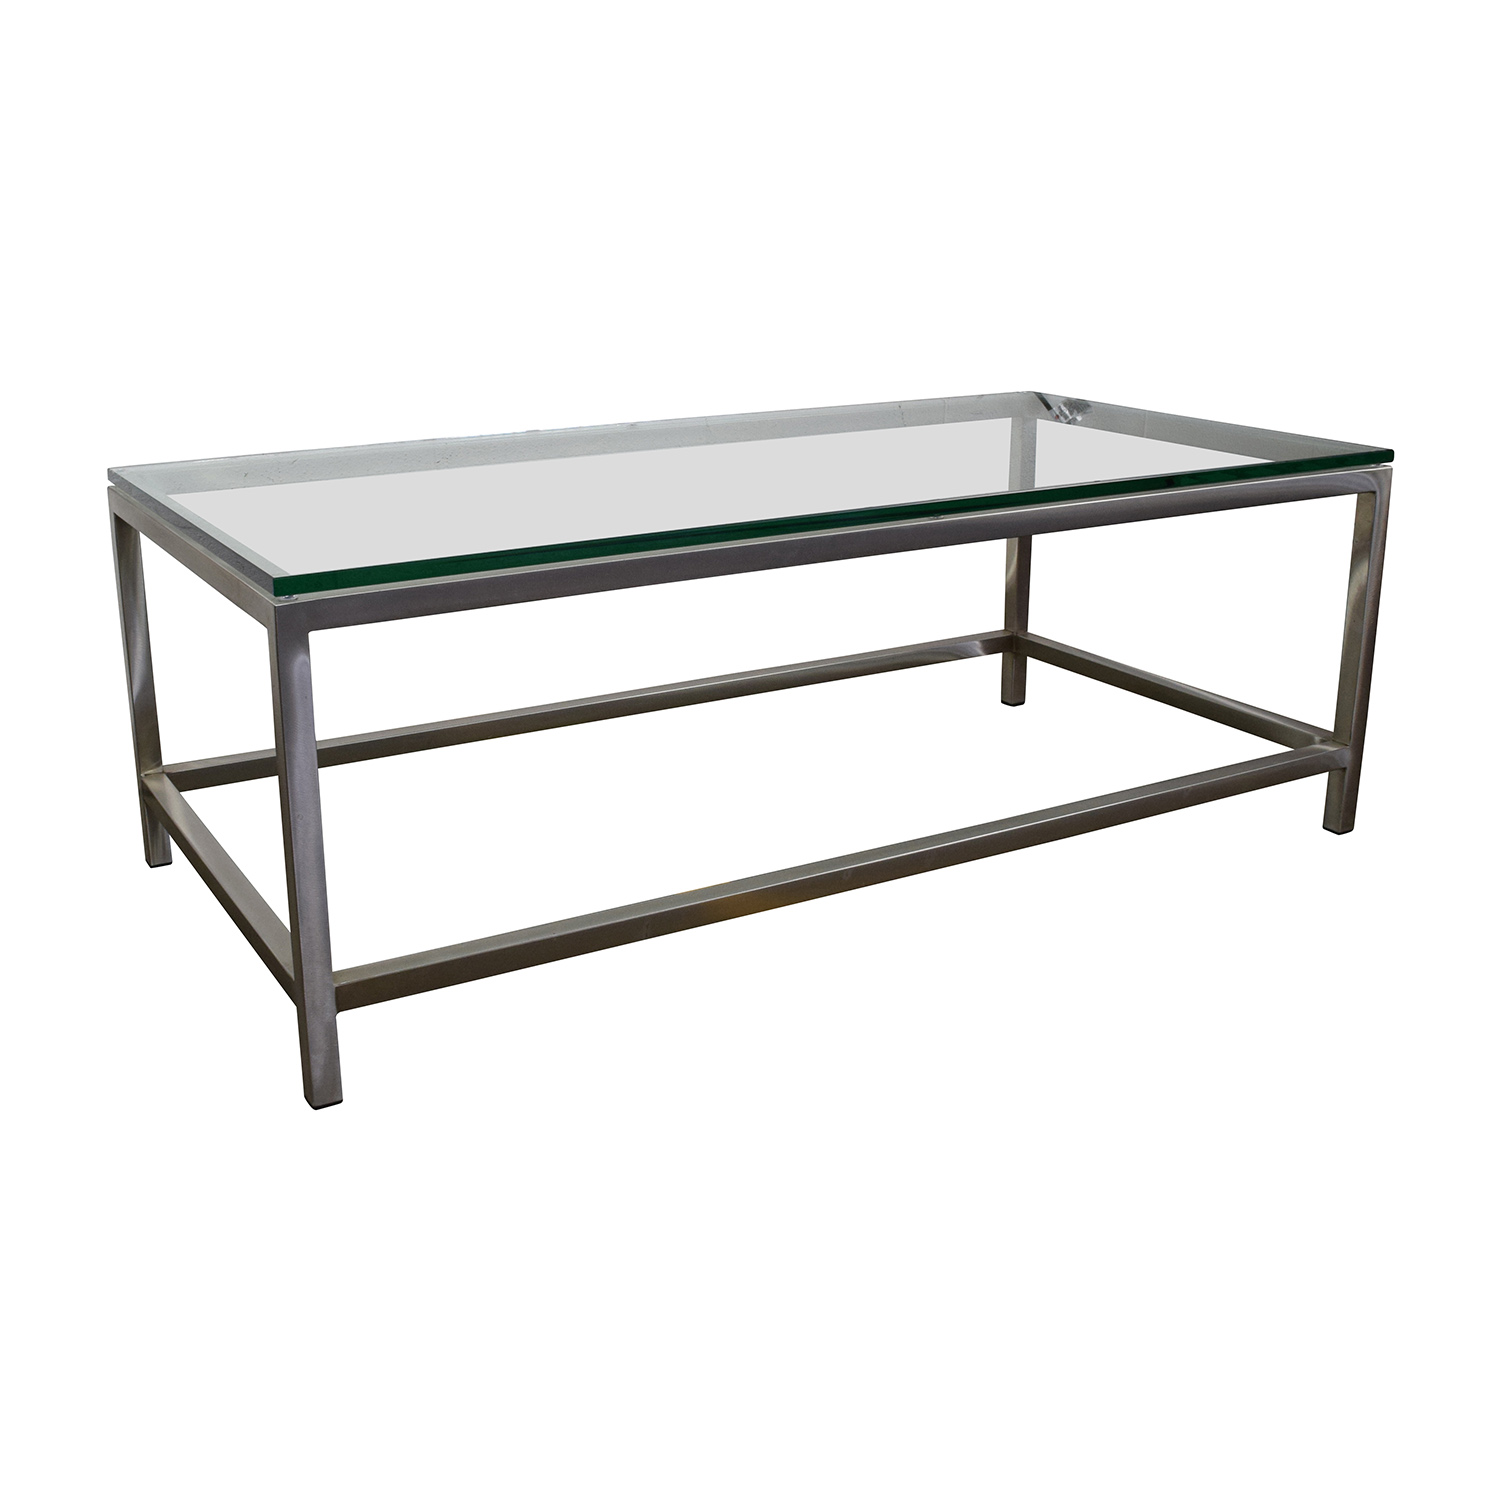 63 Off Crate And Barrel Crate Barrel Era Rectangular Coffee Table Tables